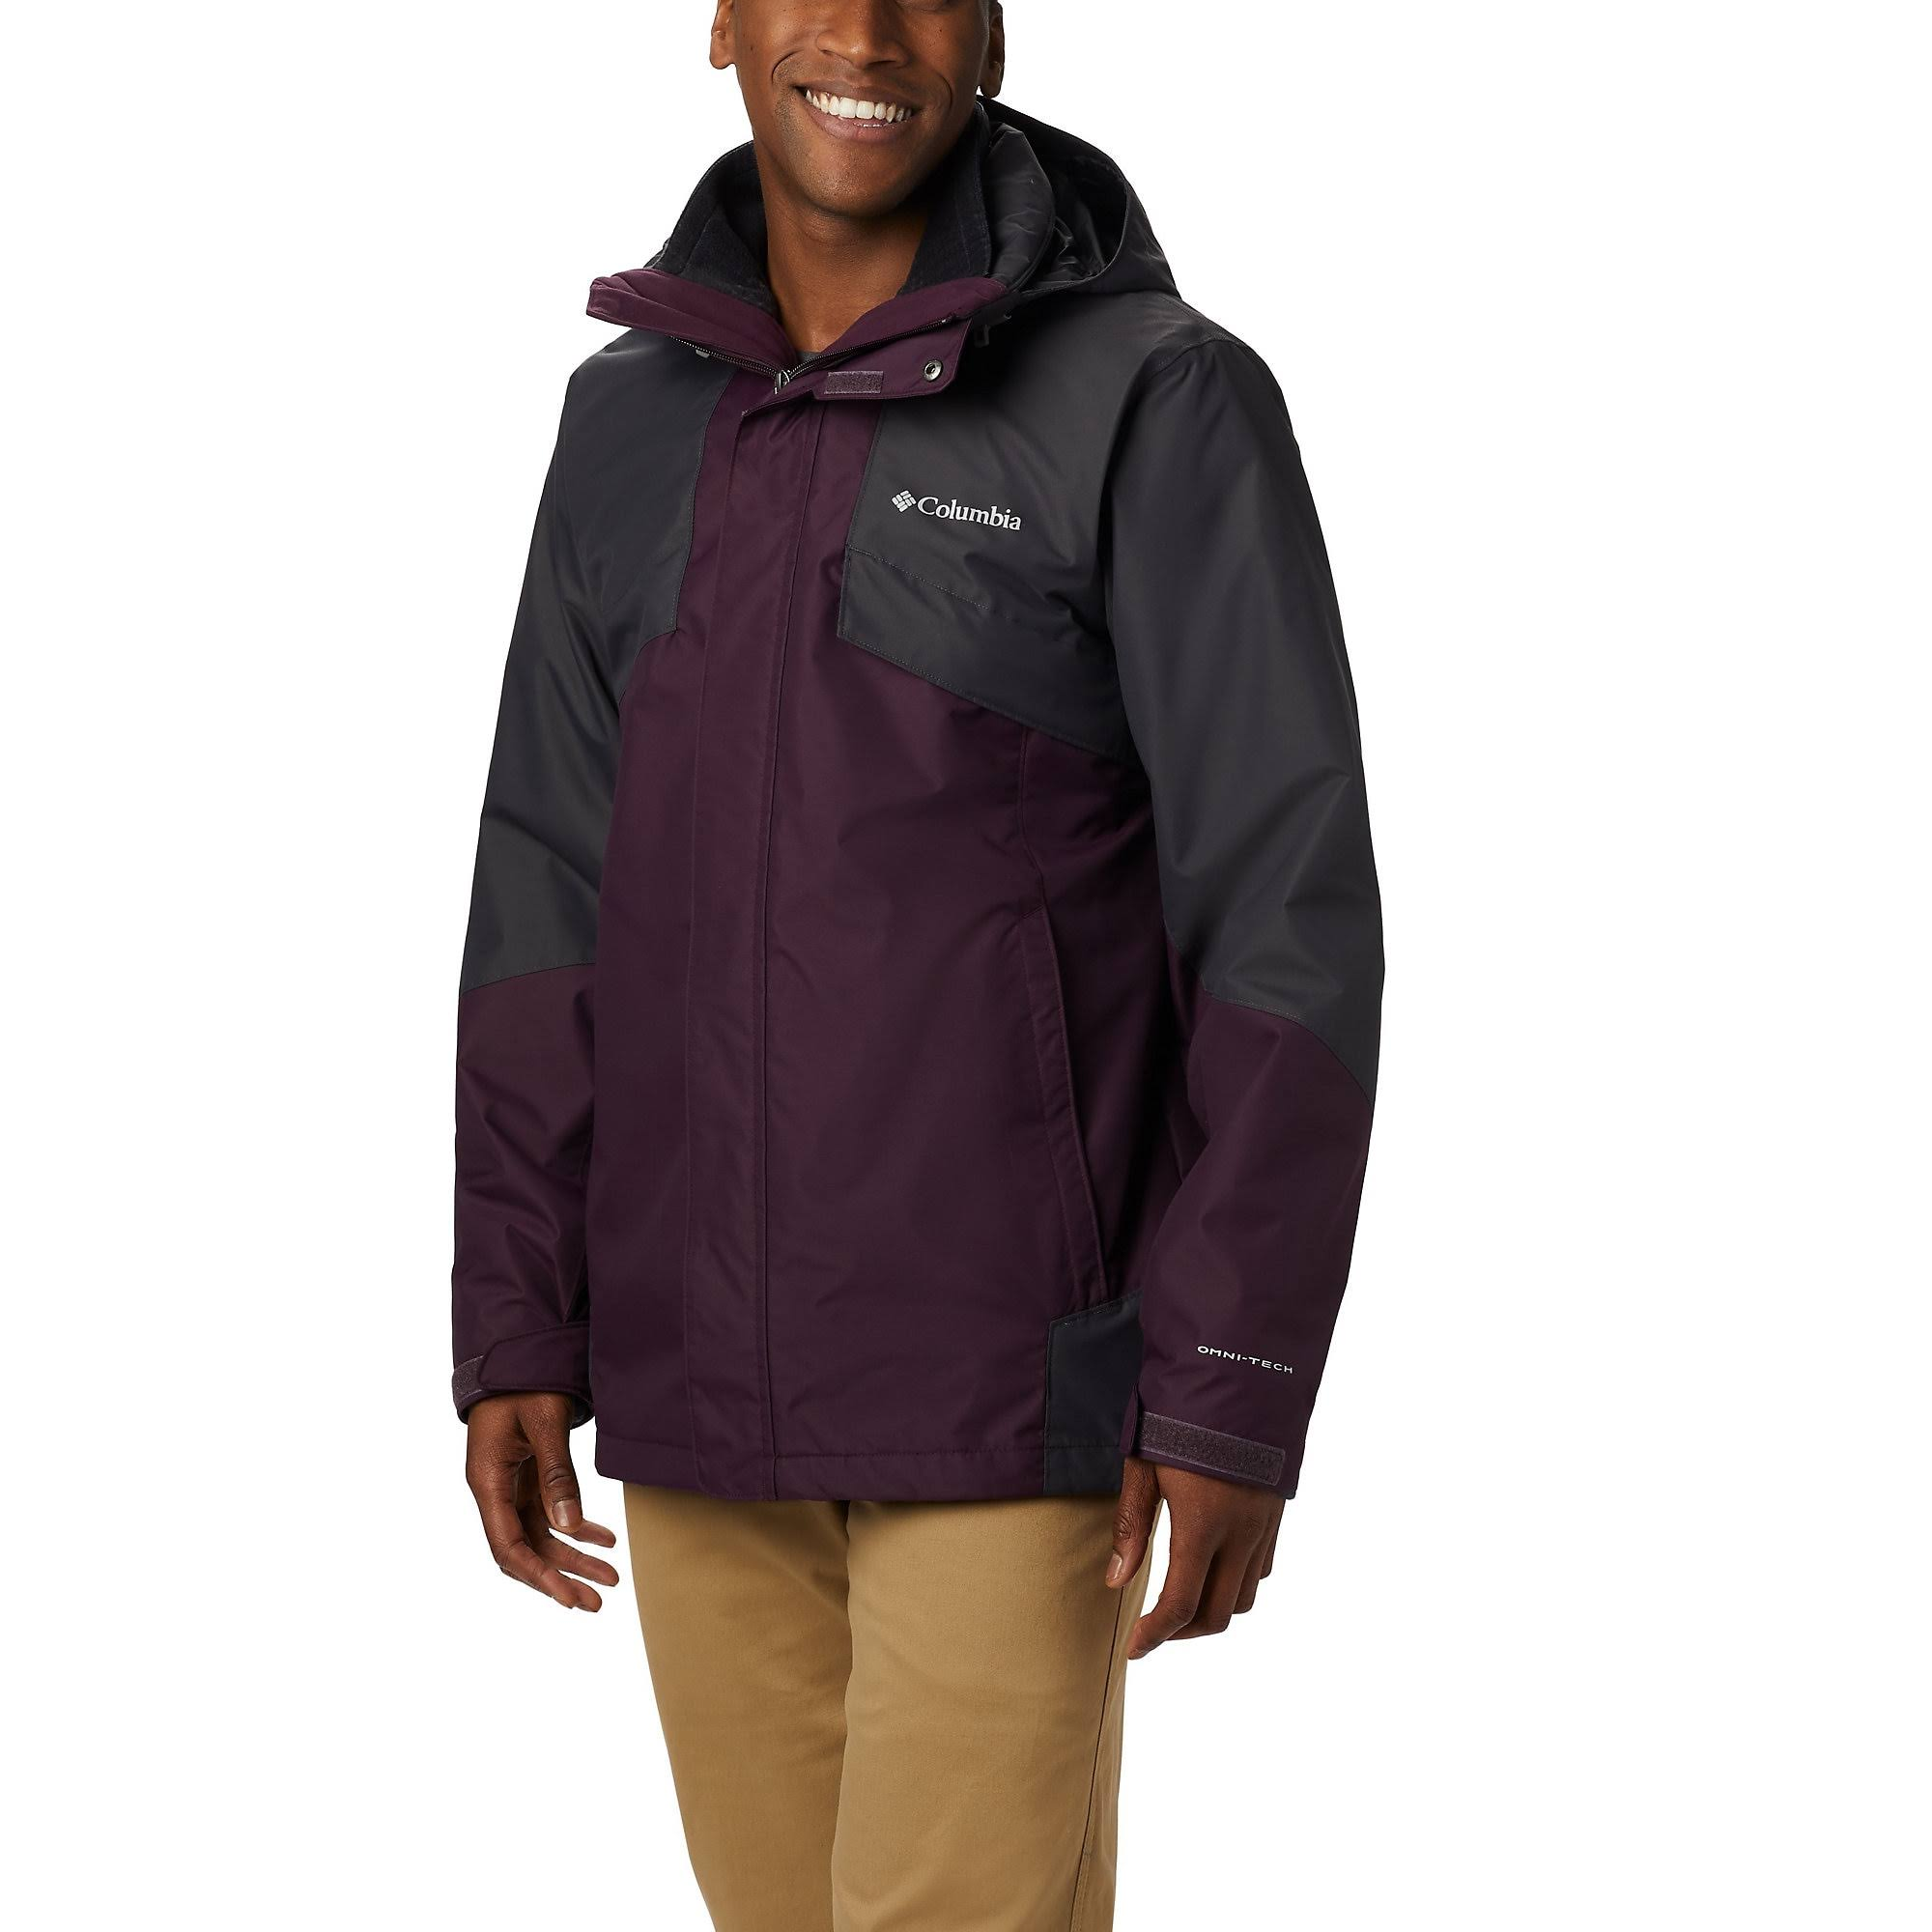 Columbia Bugaboo II Interchange Jacket - Men's Black Cherry/Shark, M